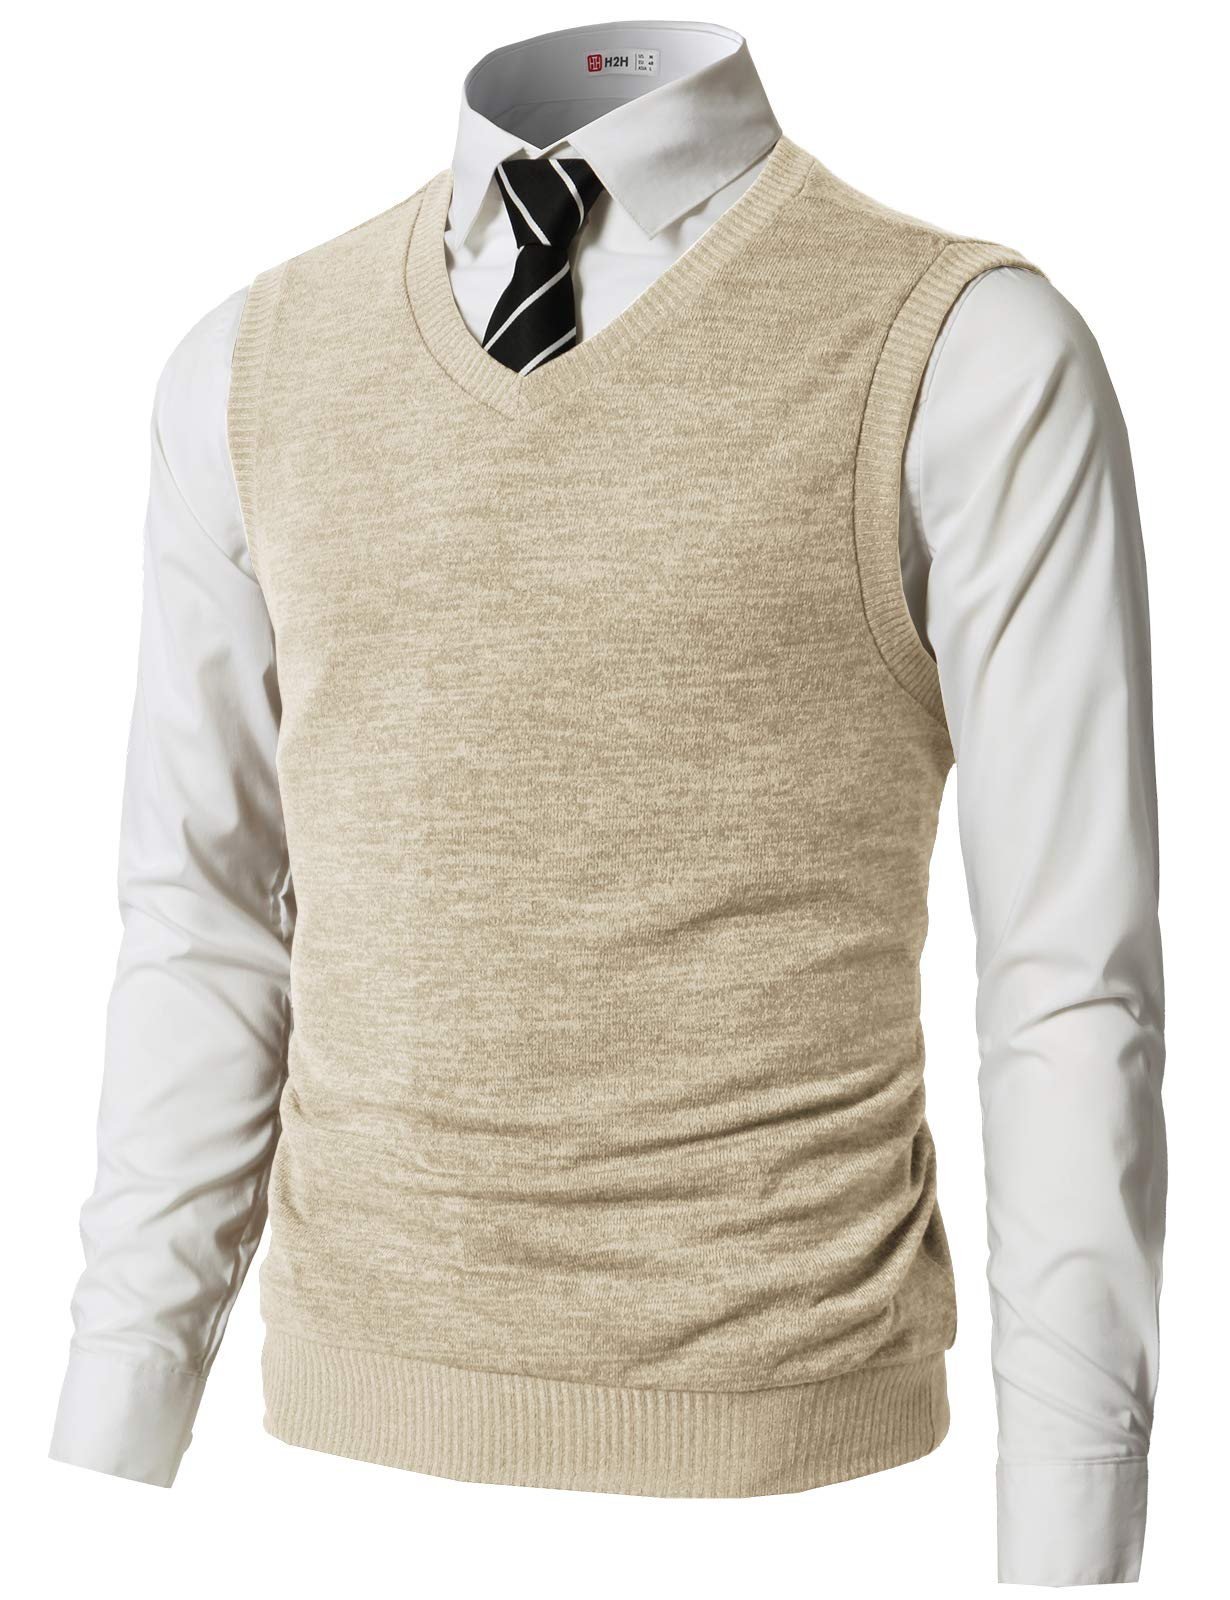 a14a19acfc Galleon - H2H Mens Basic Fashion V-Neck Knit Vest Ivory US 3XL Asia 4XL  (CMOV042)